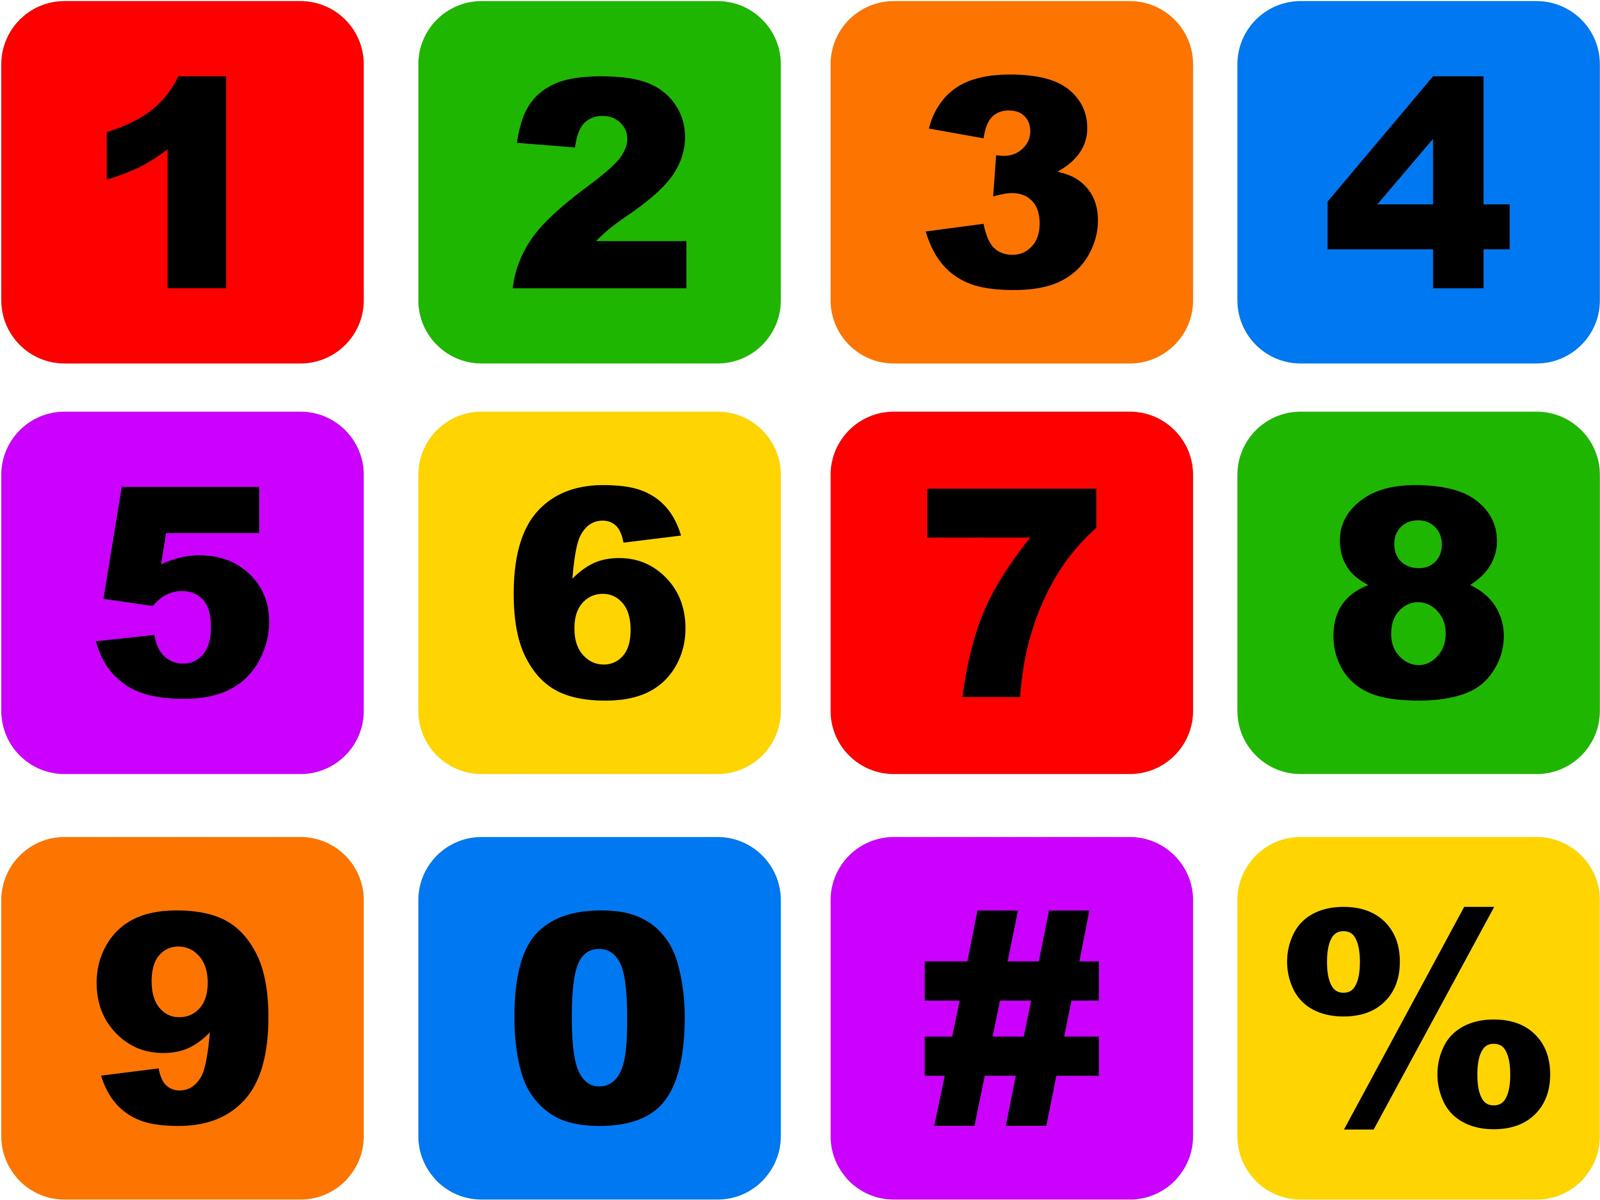 7 Number Icon Set Images